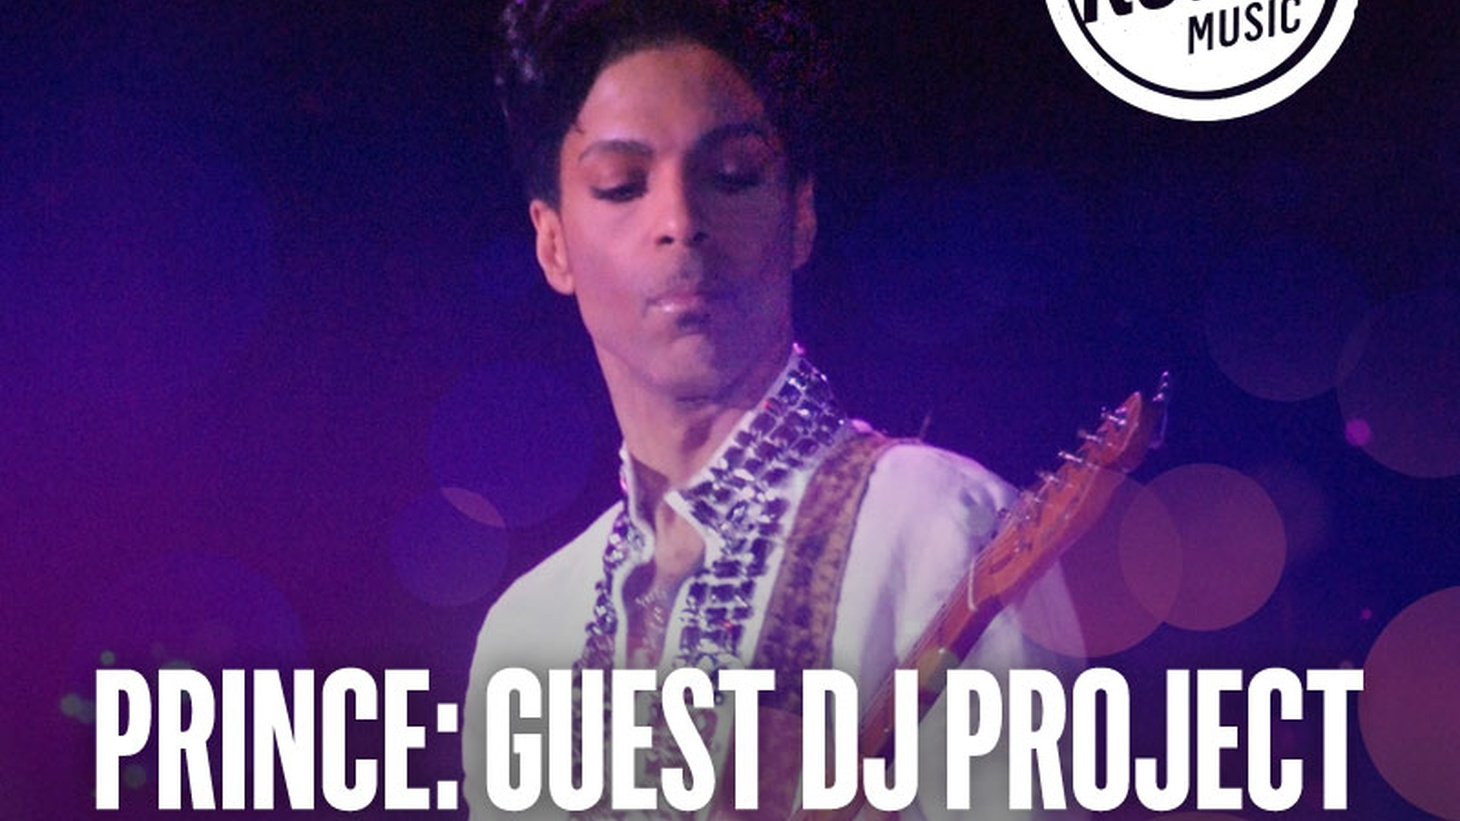 We honor the legacy of Prince by sharing stories from five guests we've hosted on KCRW's Guest DJ Project over the years: Actress Michaela Watkins, actor Jemaine Clement, chef Marcus Samuelsson, choreographer Kyle Abraham and comedian Fred Armisen.